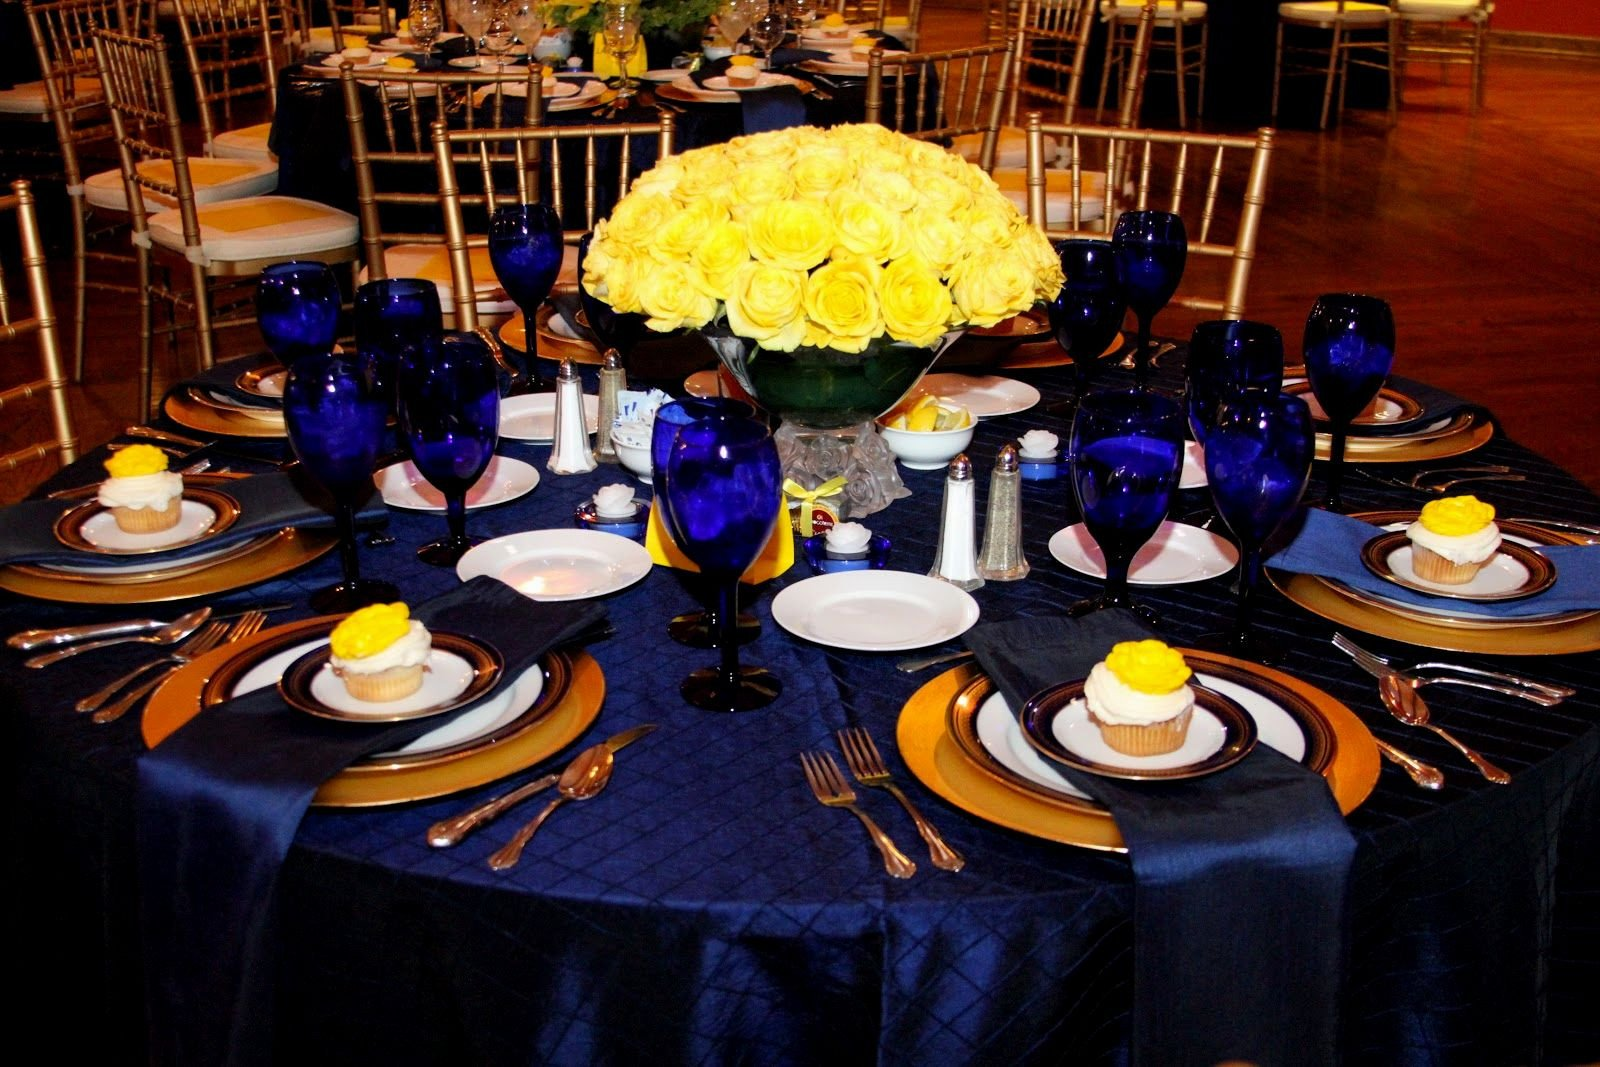 Blue and Yellow Wedding Decor Inspirational 9 Bud Ways to Decorate Your Wedding